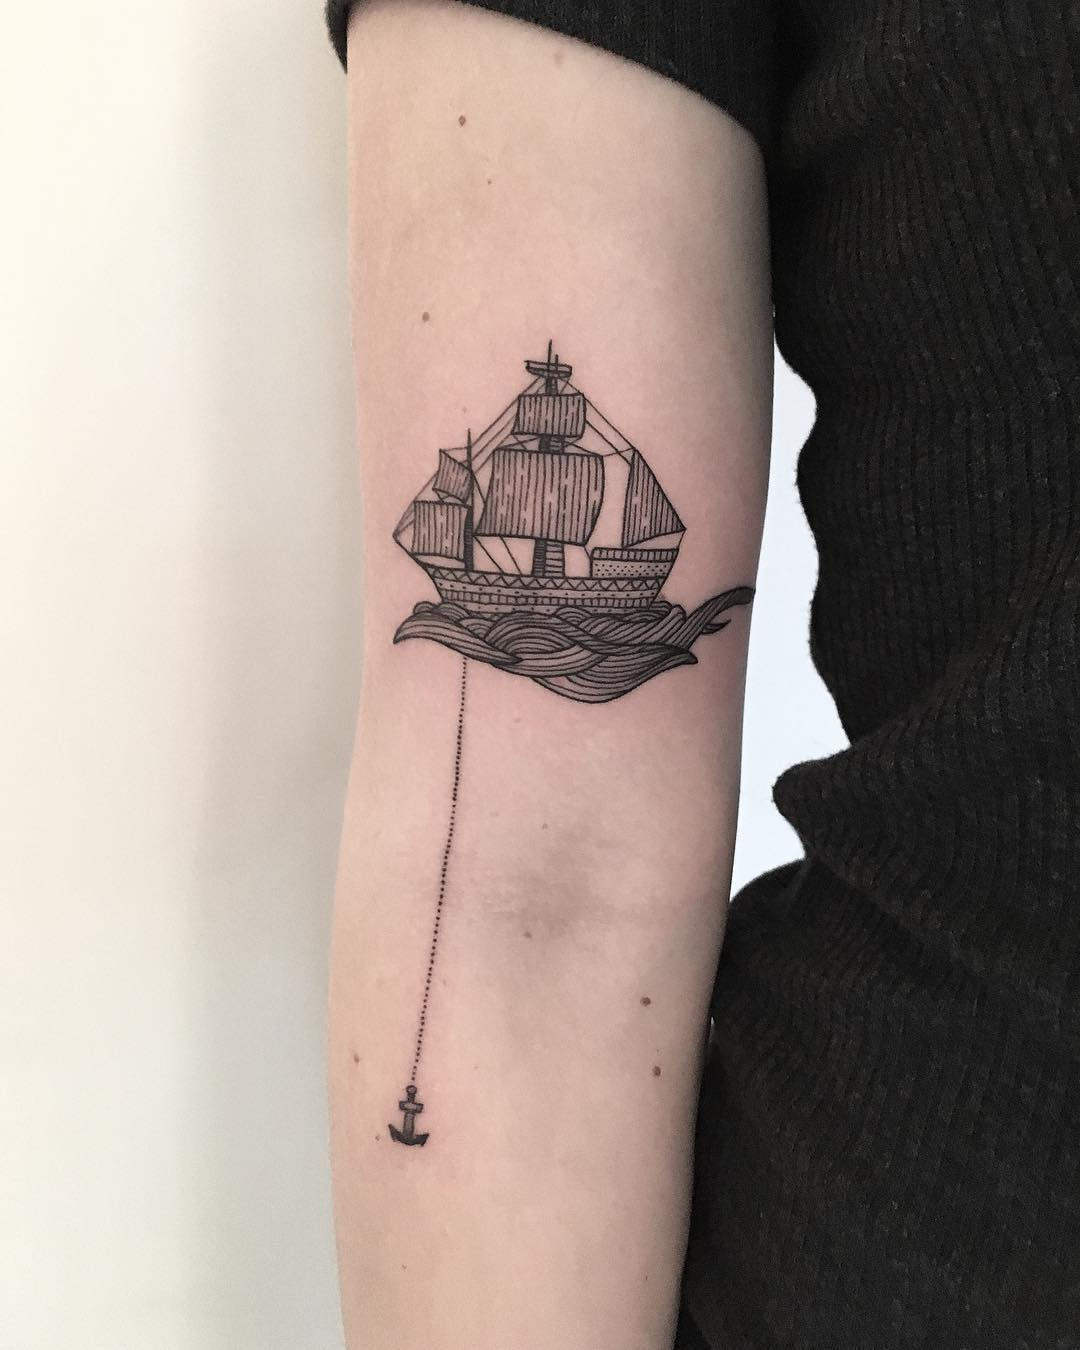 Ship and anchor by tattooist Spence @zz tattoo